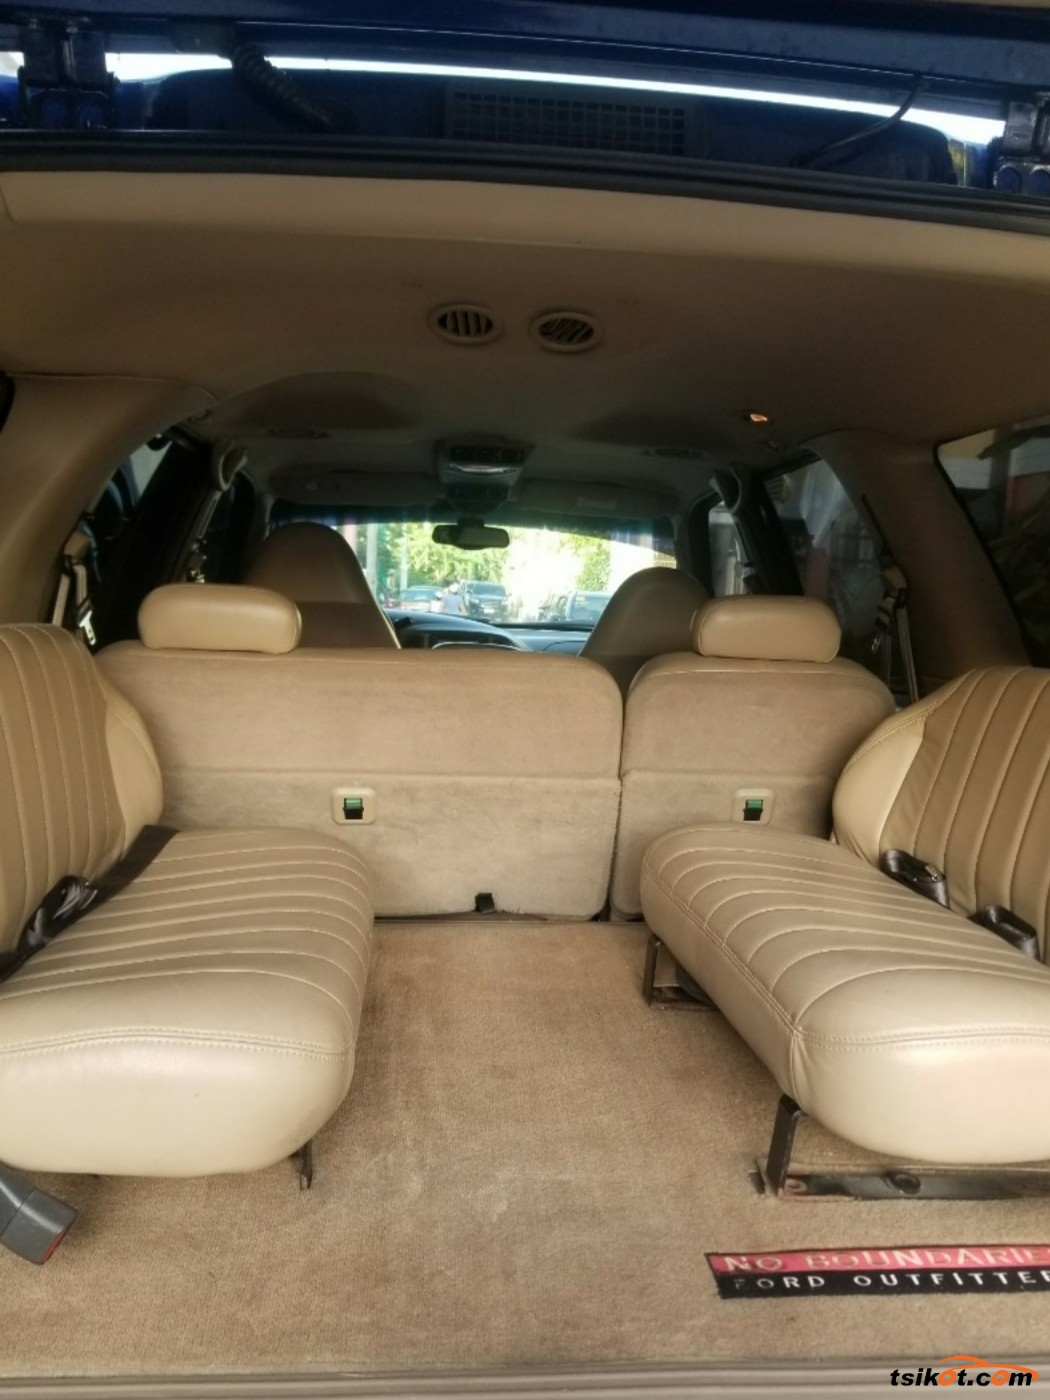 Ford Expedition 2001 - 6